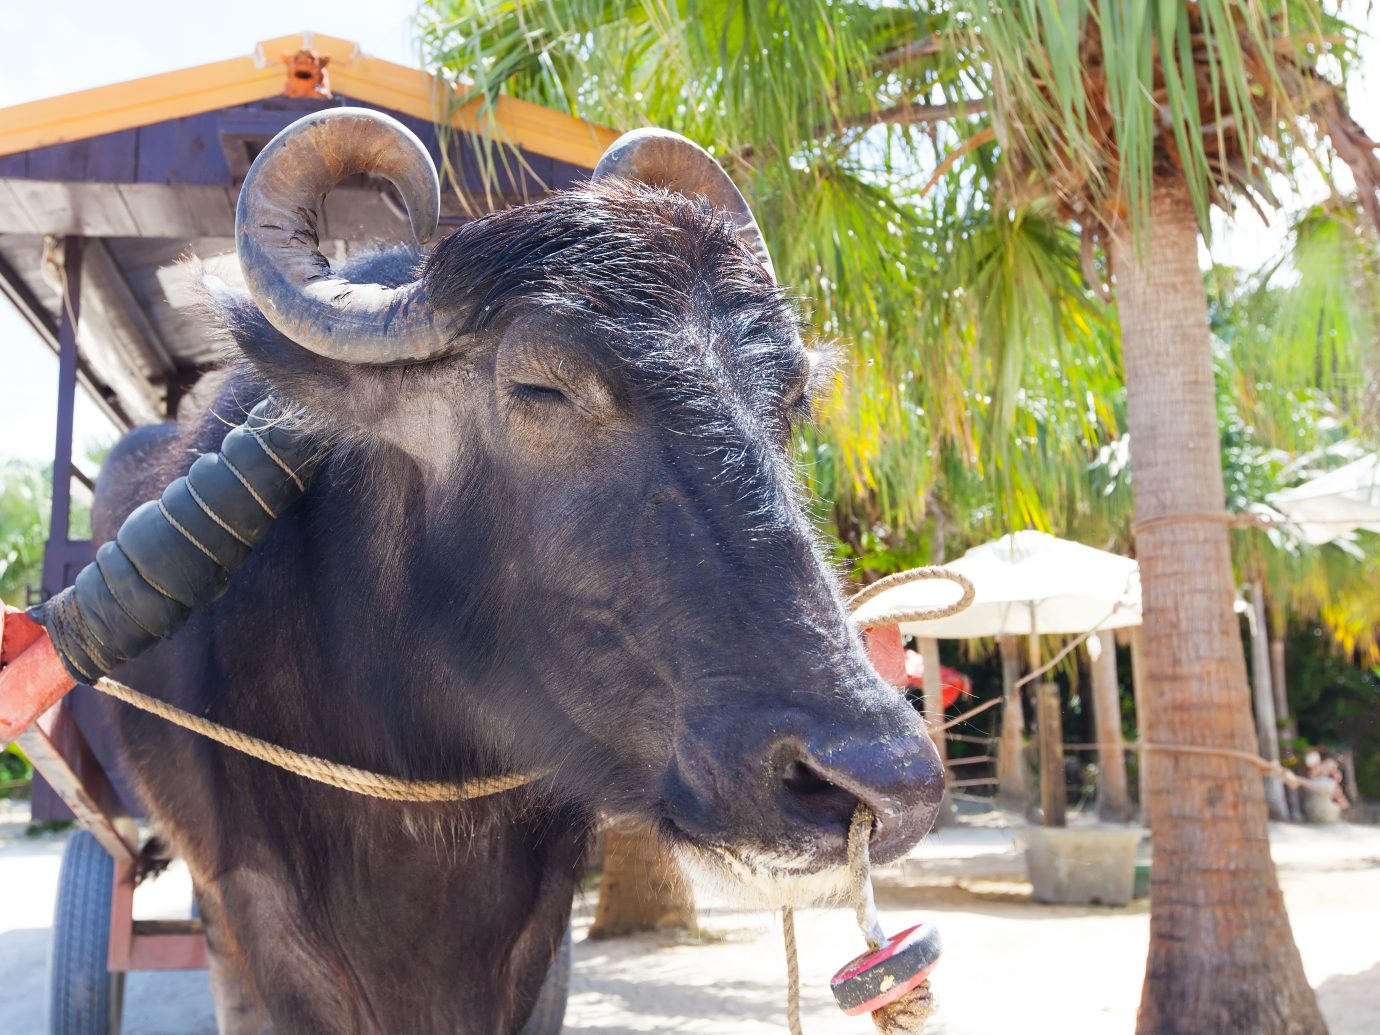 traditional water buffalo ride at taketomi island, japan